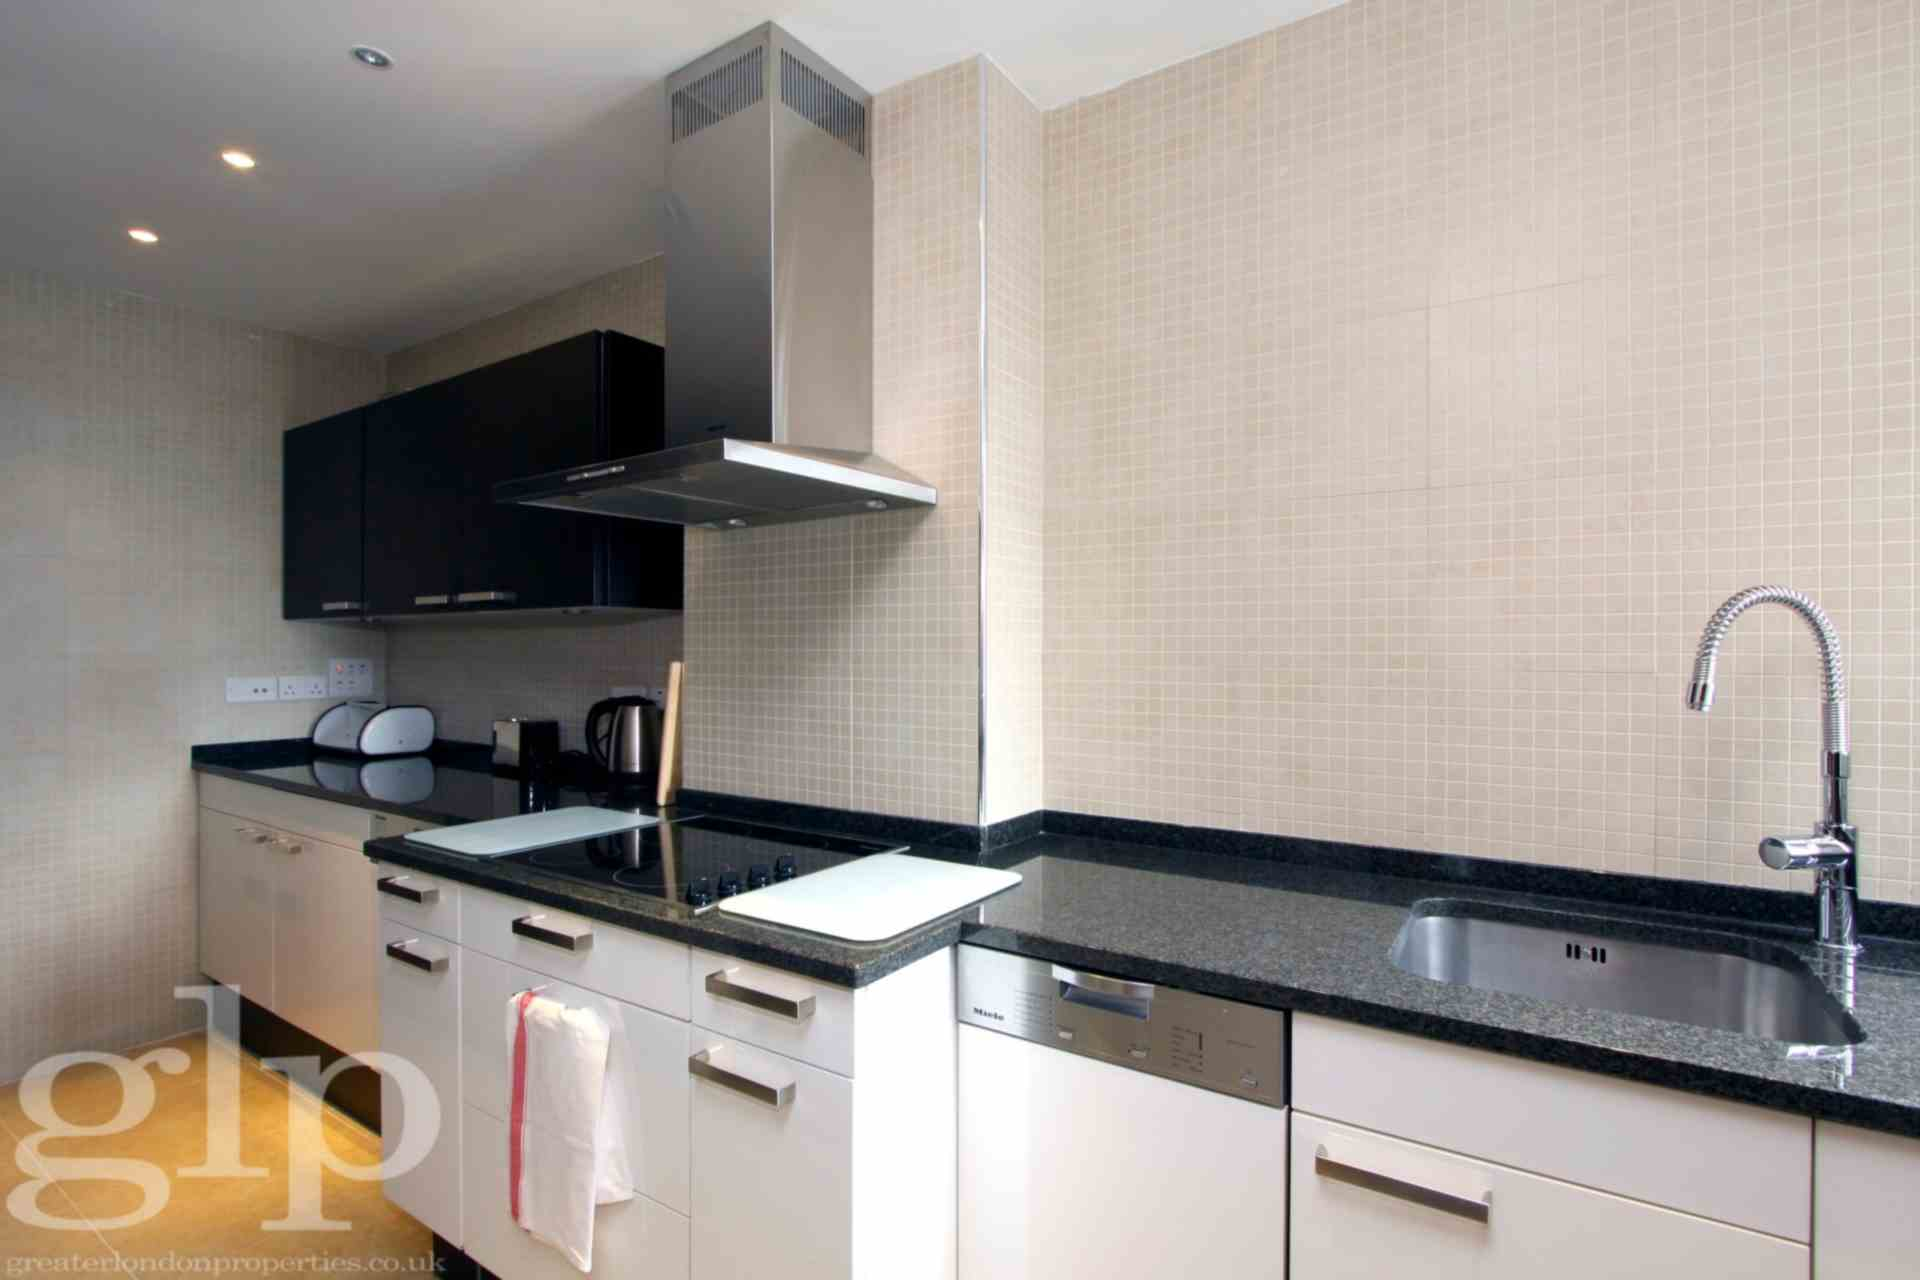 1 Bedroom Apartment Arlington Street St James S Sw1a Greater London Properties